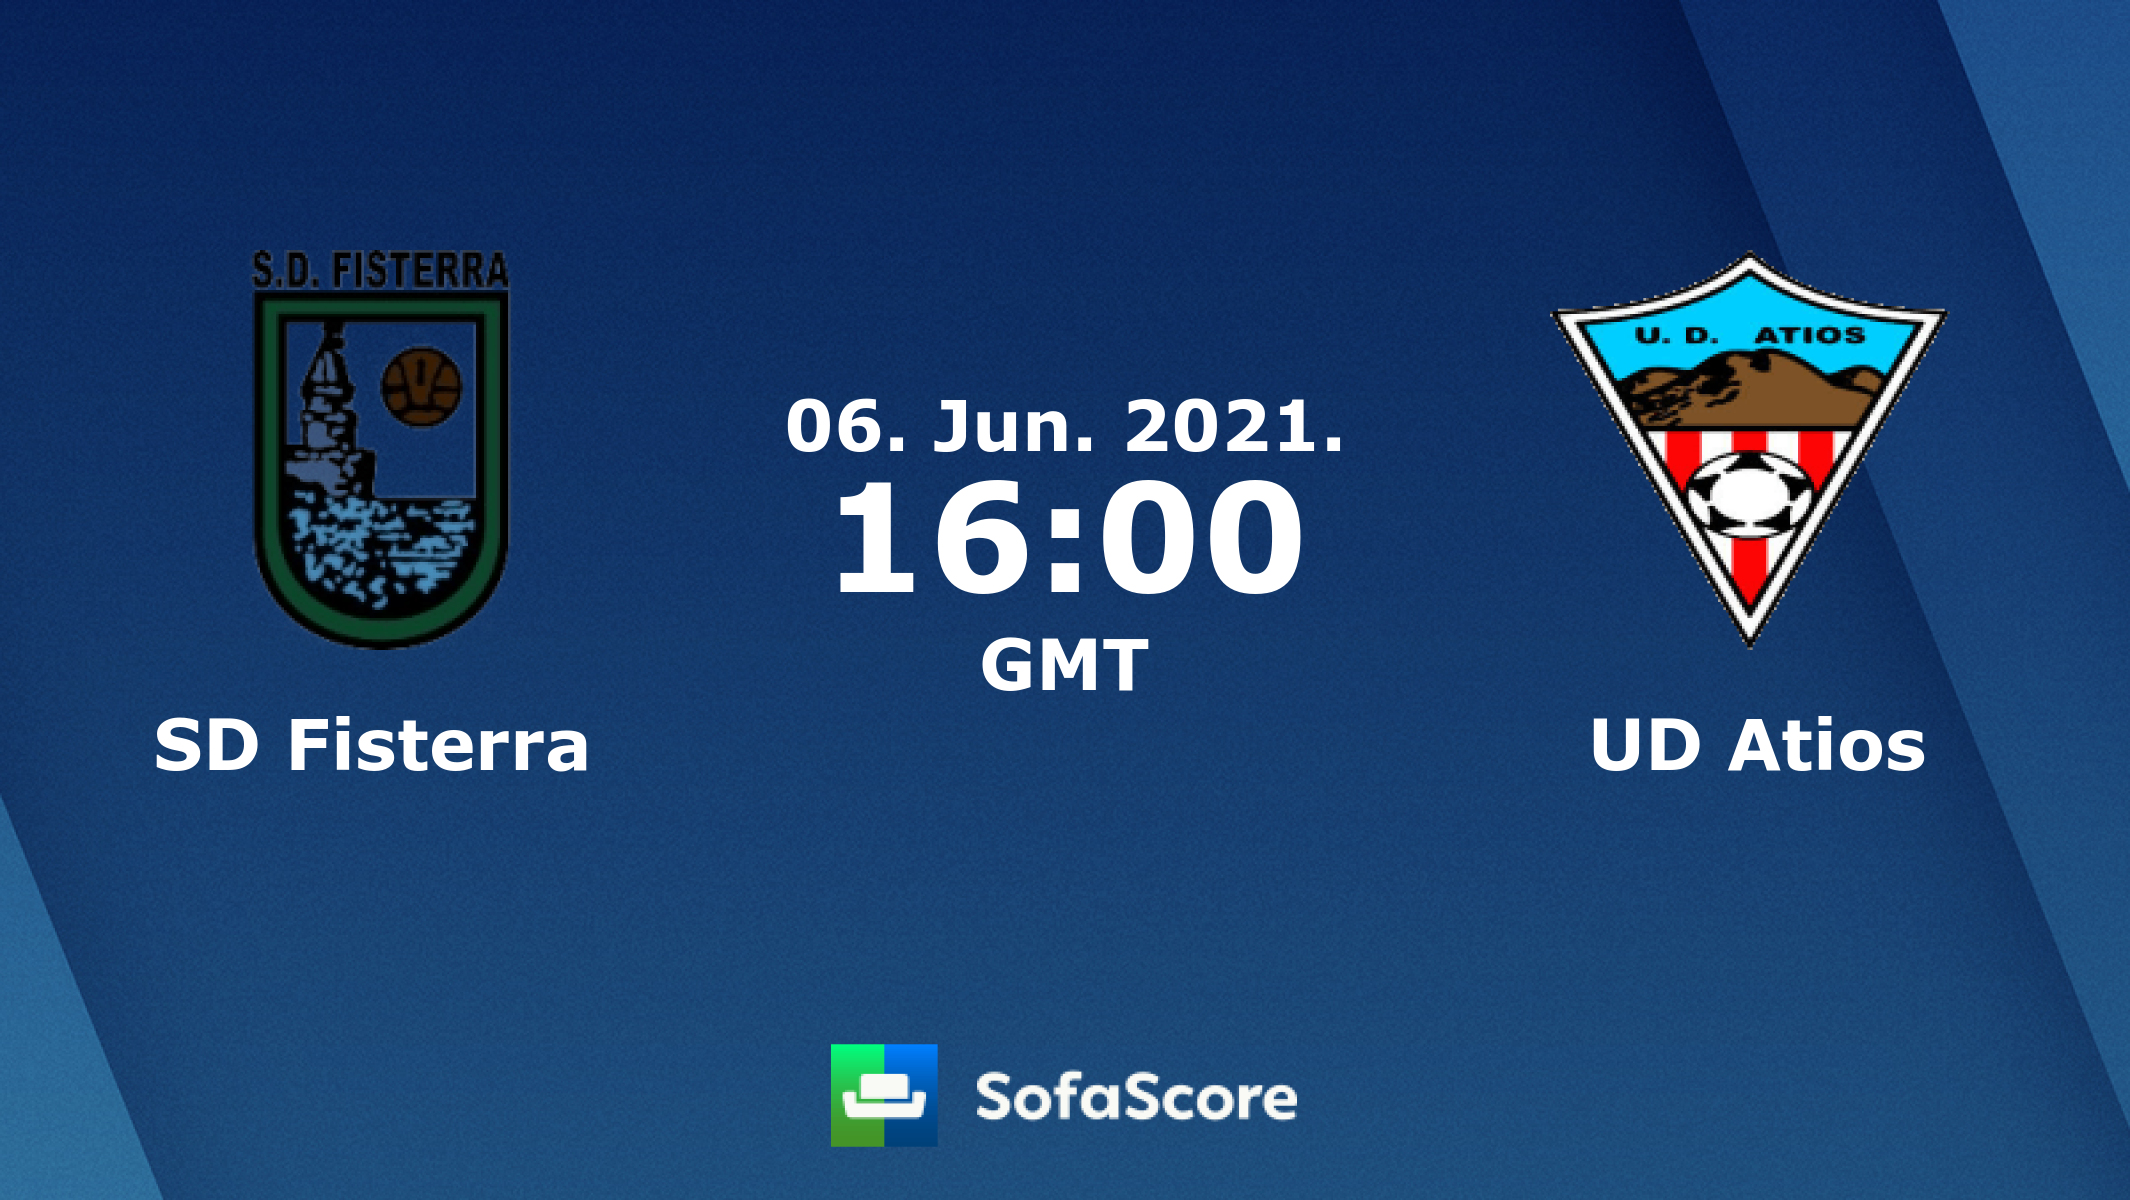 SD Fisterra vs UD Atios live score, H2H and lineups | SofaScore